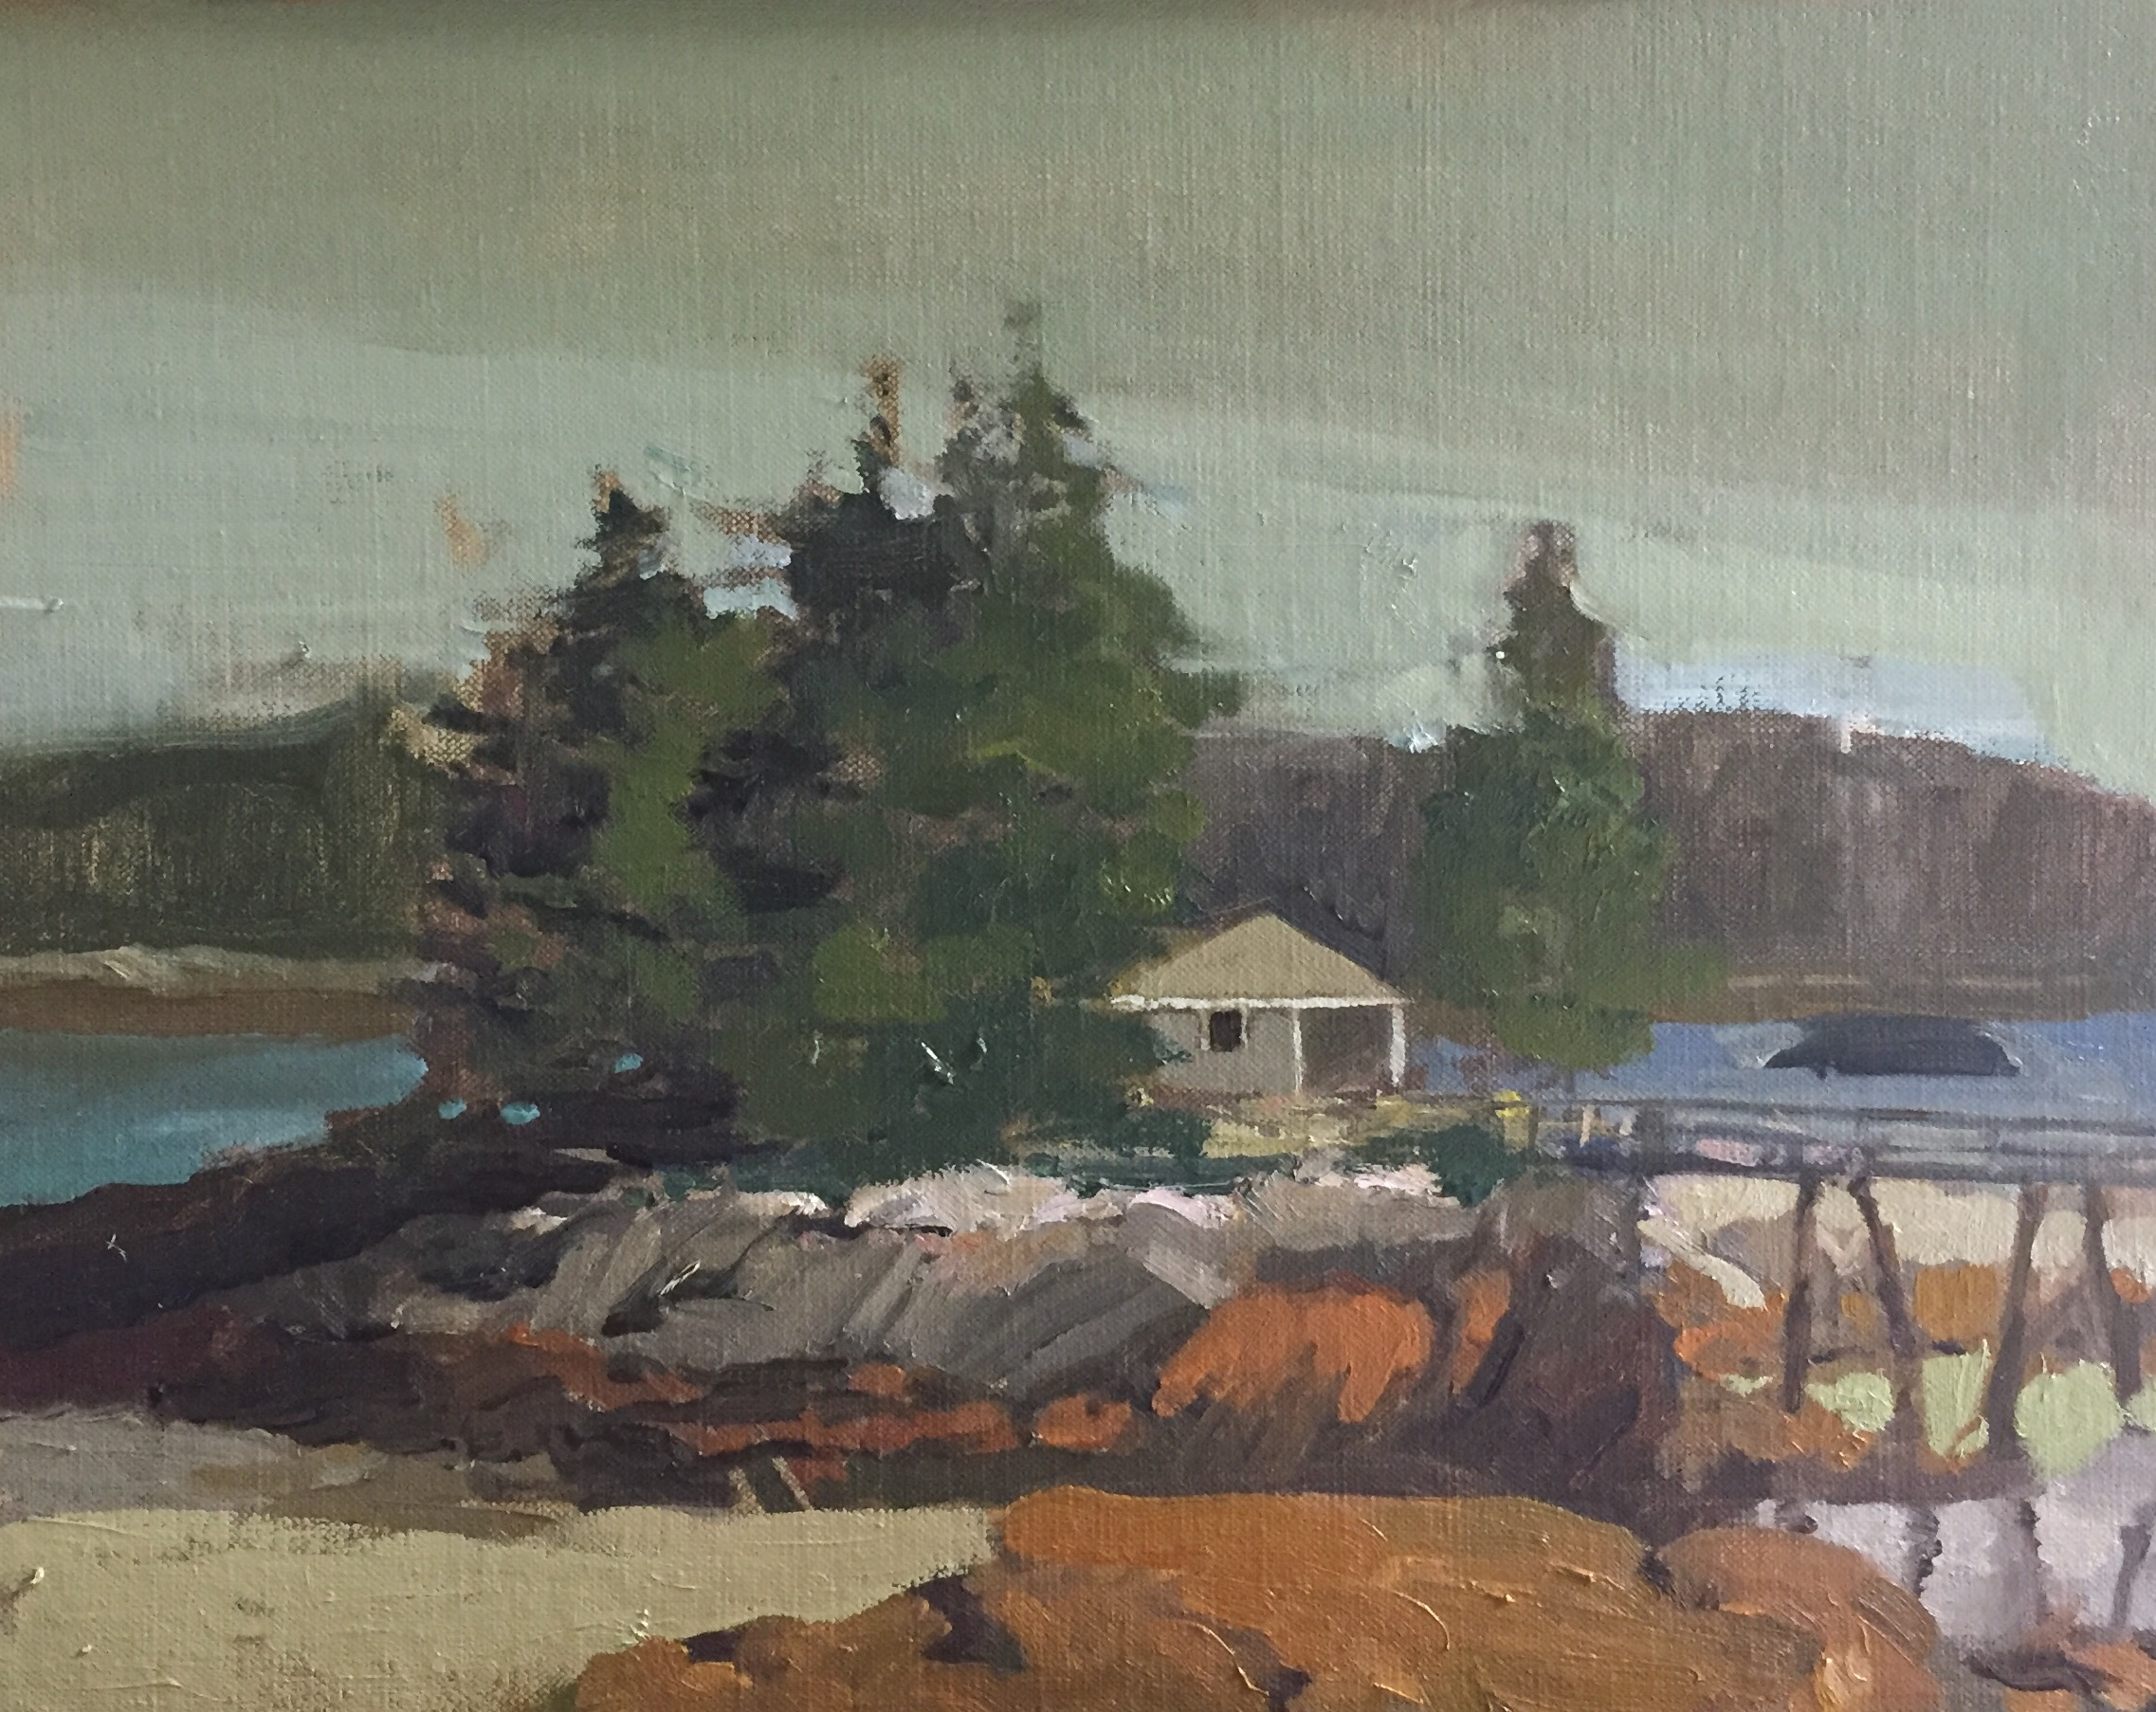 Small Camp<br>Oil on Canvas